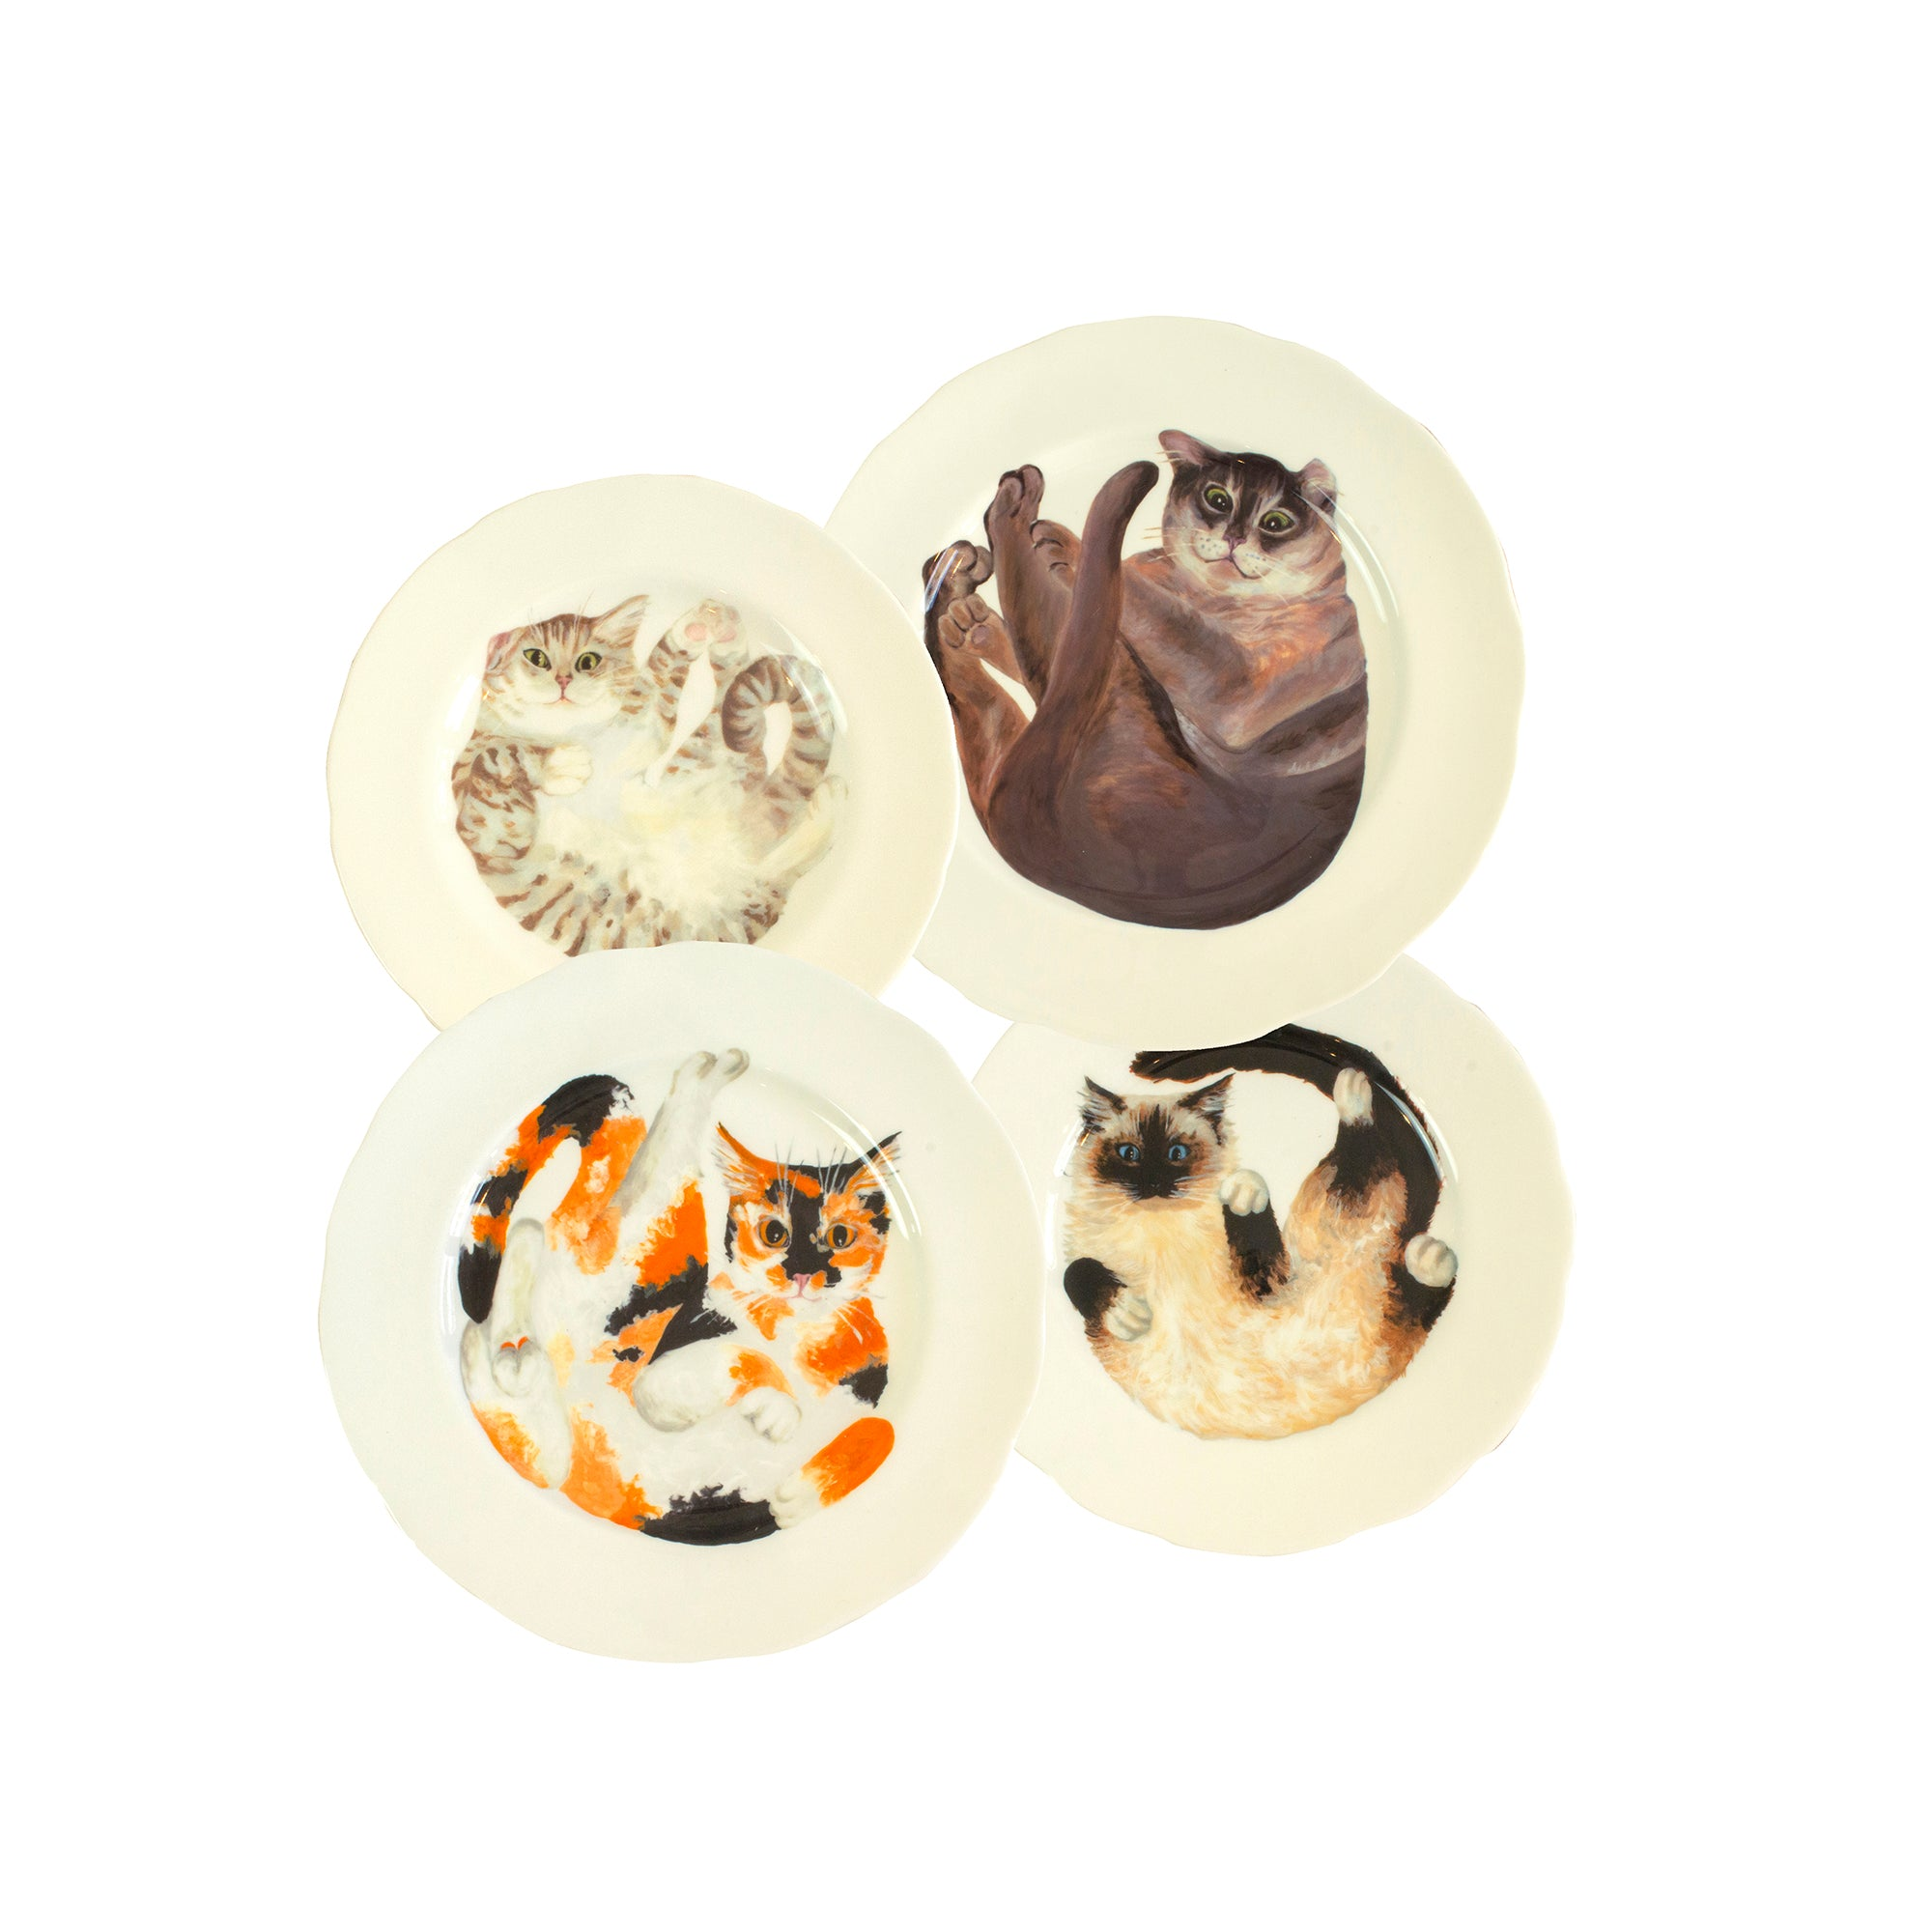 Four white china plates with one illustrated tabby cat, one tortoiseshell cat, one burmilla cat and one ragdoll cat illustrated on them. Mix and match dinner plates! - Ideal as decorative hanging plates Catnap Design London